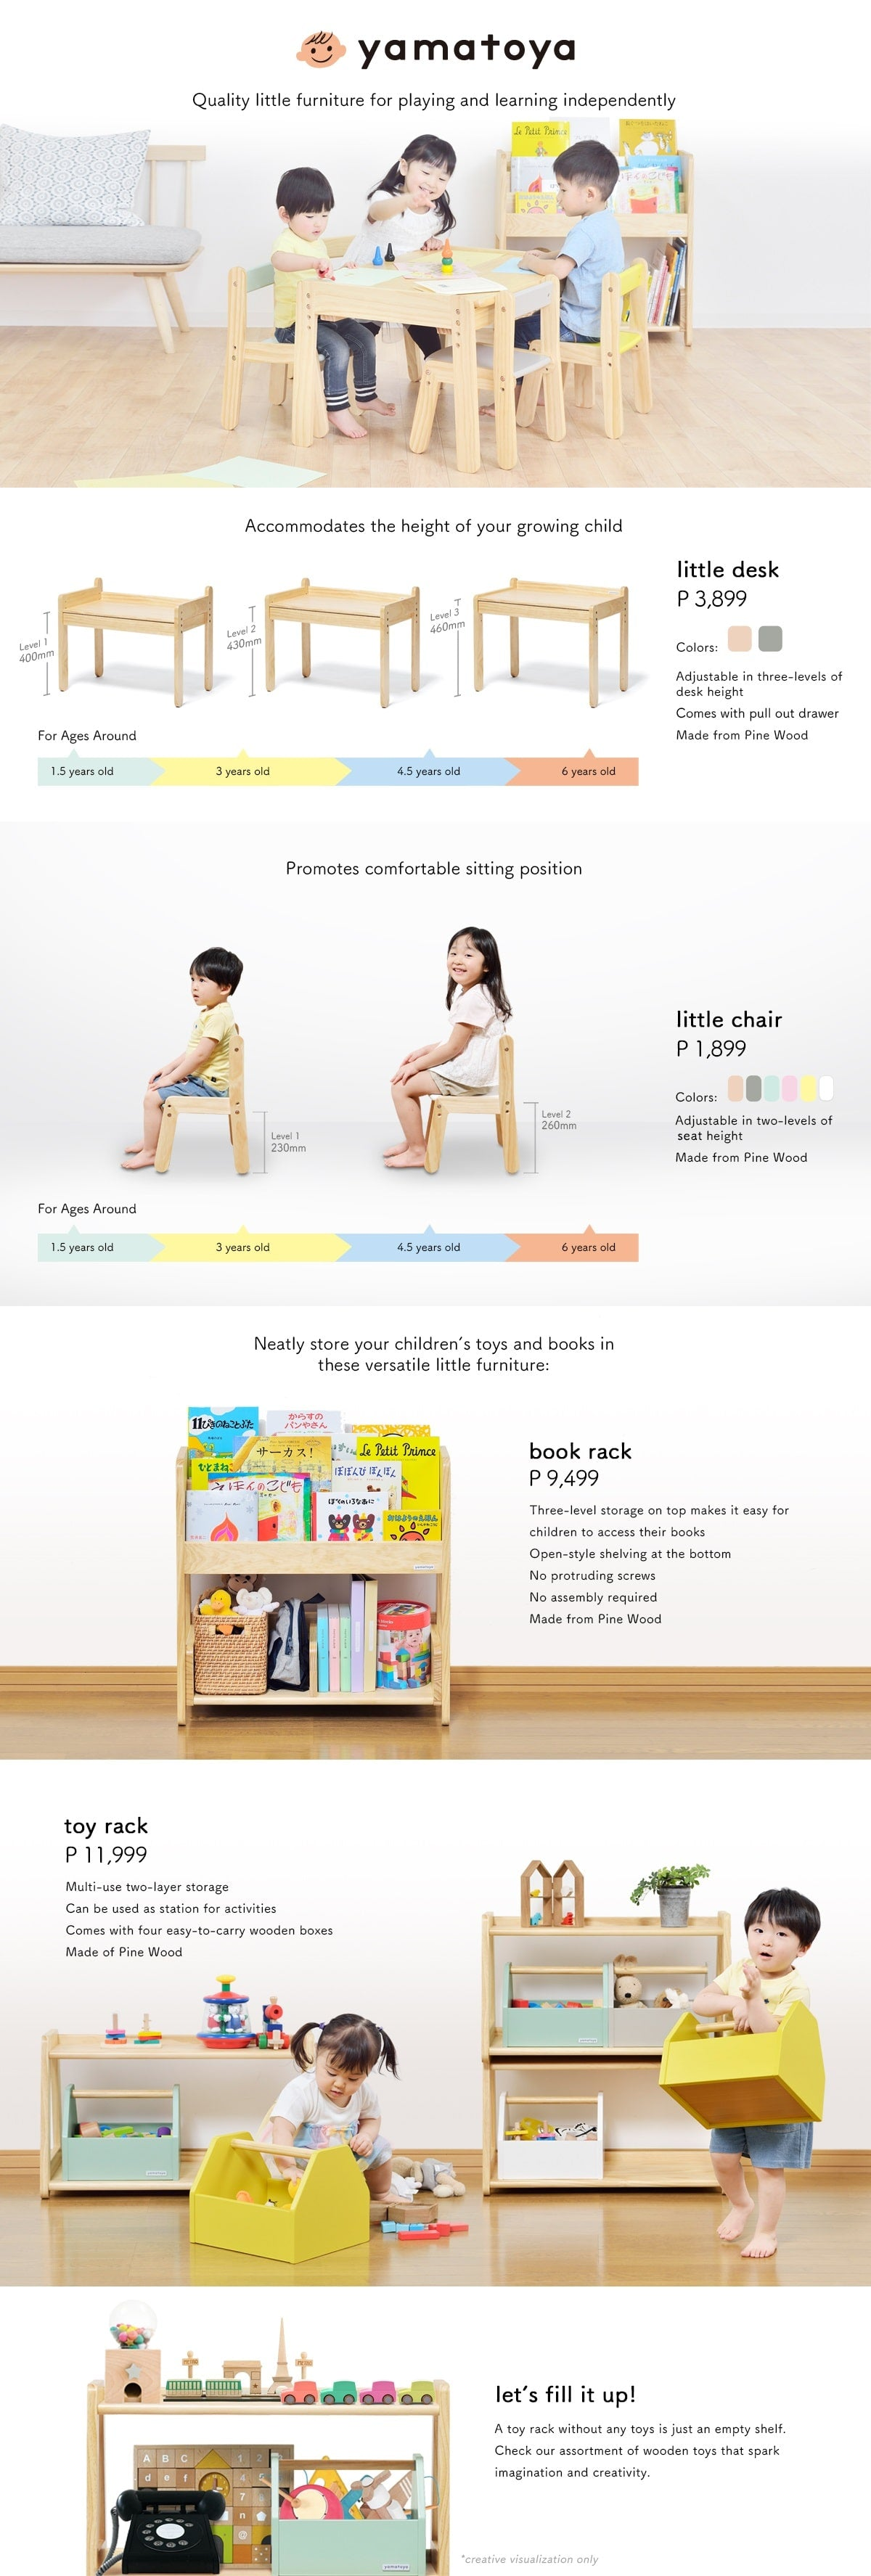 Norsta Little Desk and Large Desk are the most age appropriate chair for 18 months to 6 years old